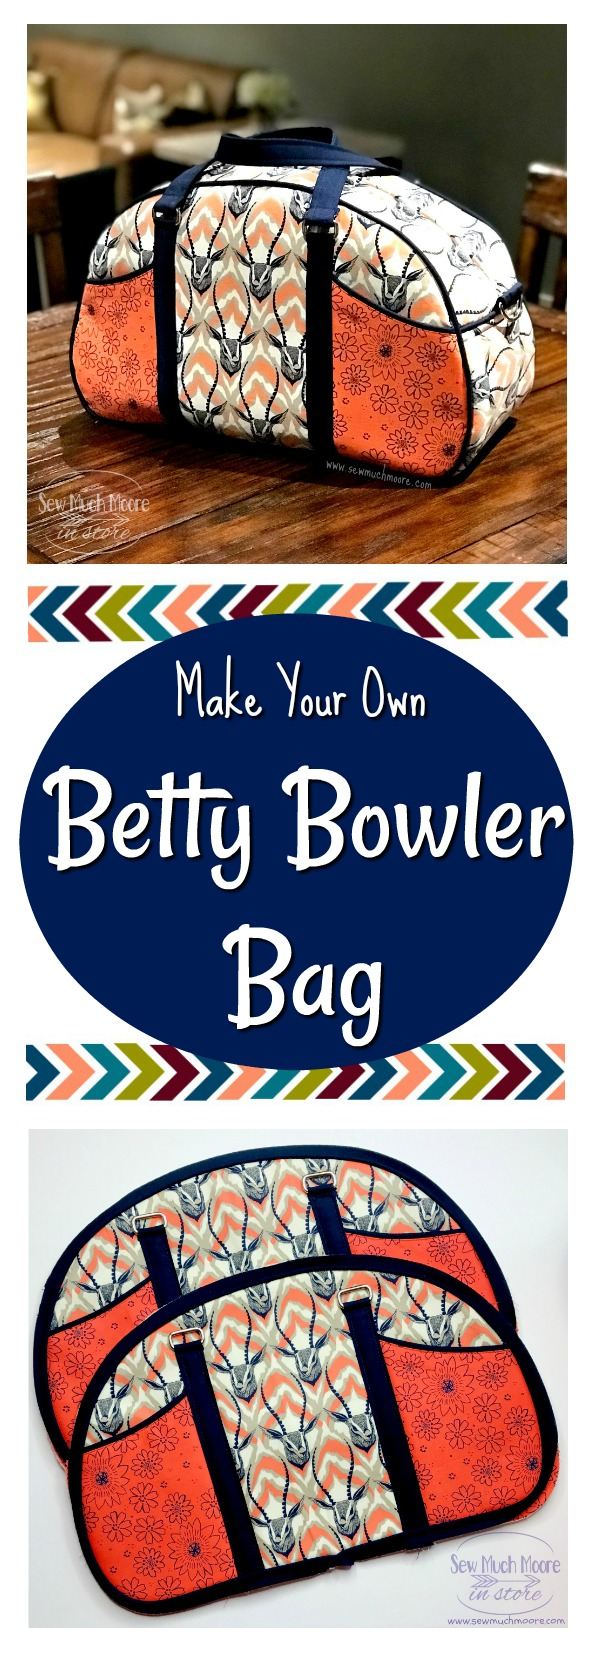 Check out these tips and tricks to make your own Betty Bowler Bag by Swoon Patterns. It's easier than you think! Video tutorial and pattern info #sewing #bagmaking #bettybowlerbag #sewingtutorials #sewing #tutorials #luggage